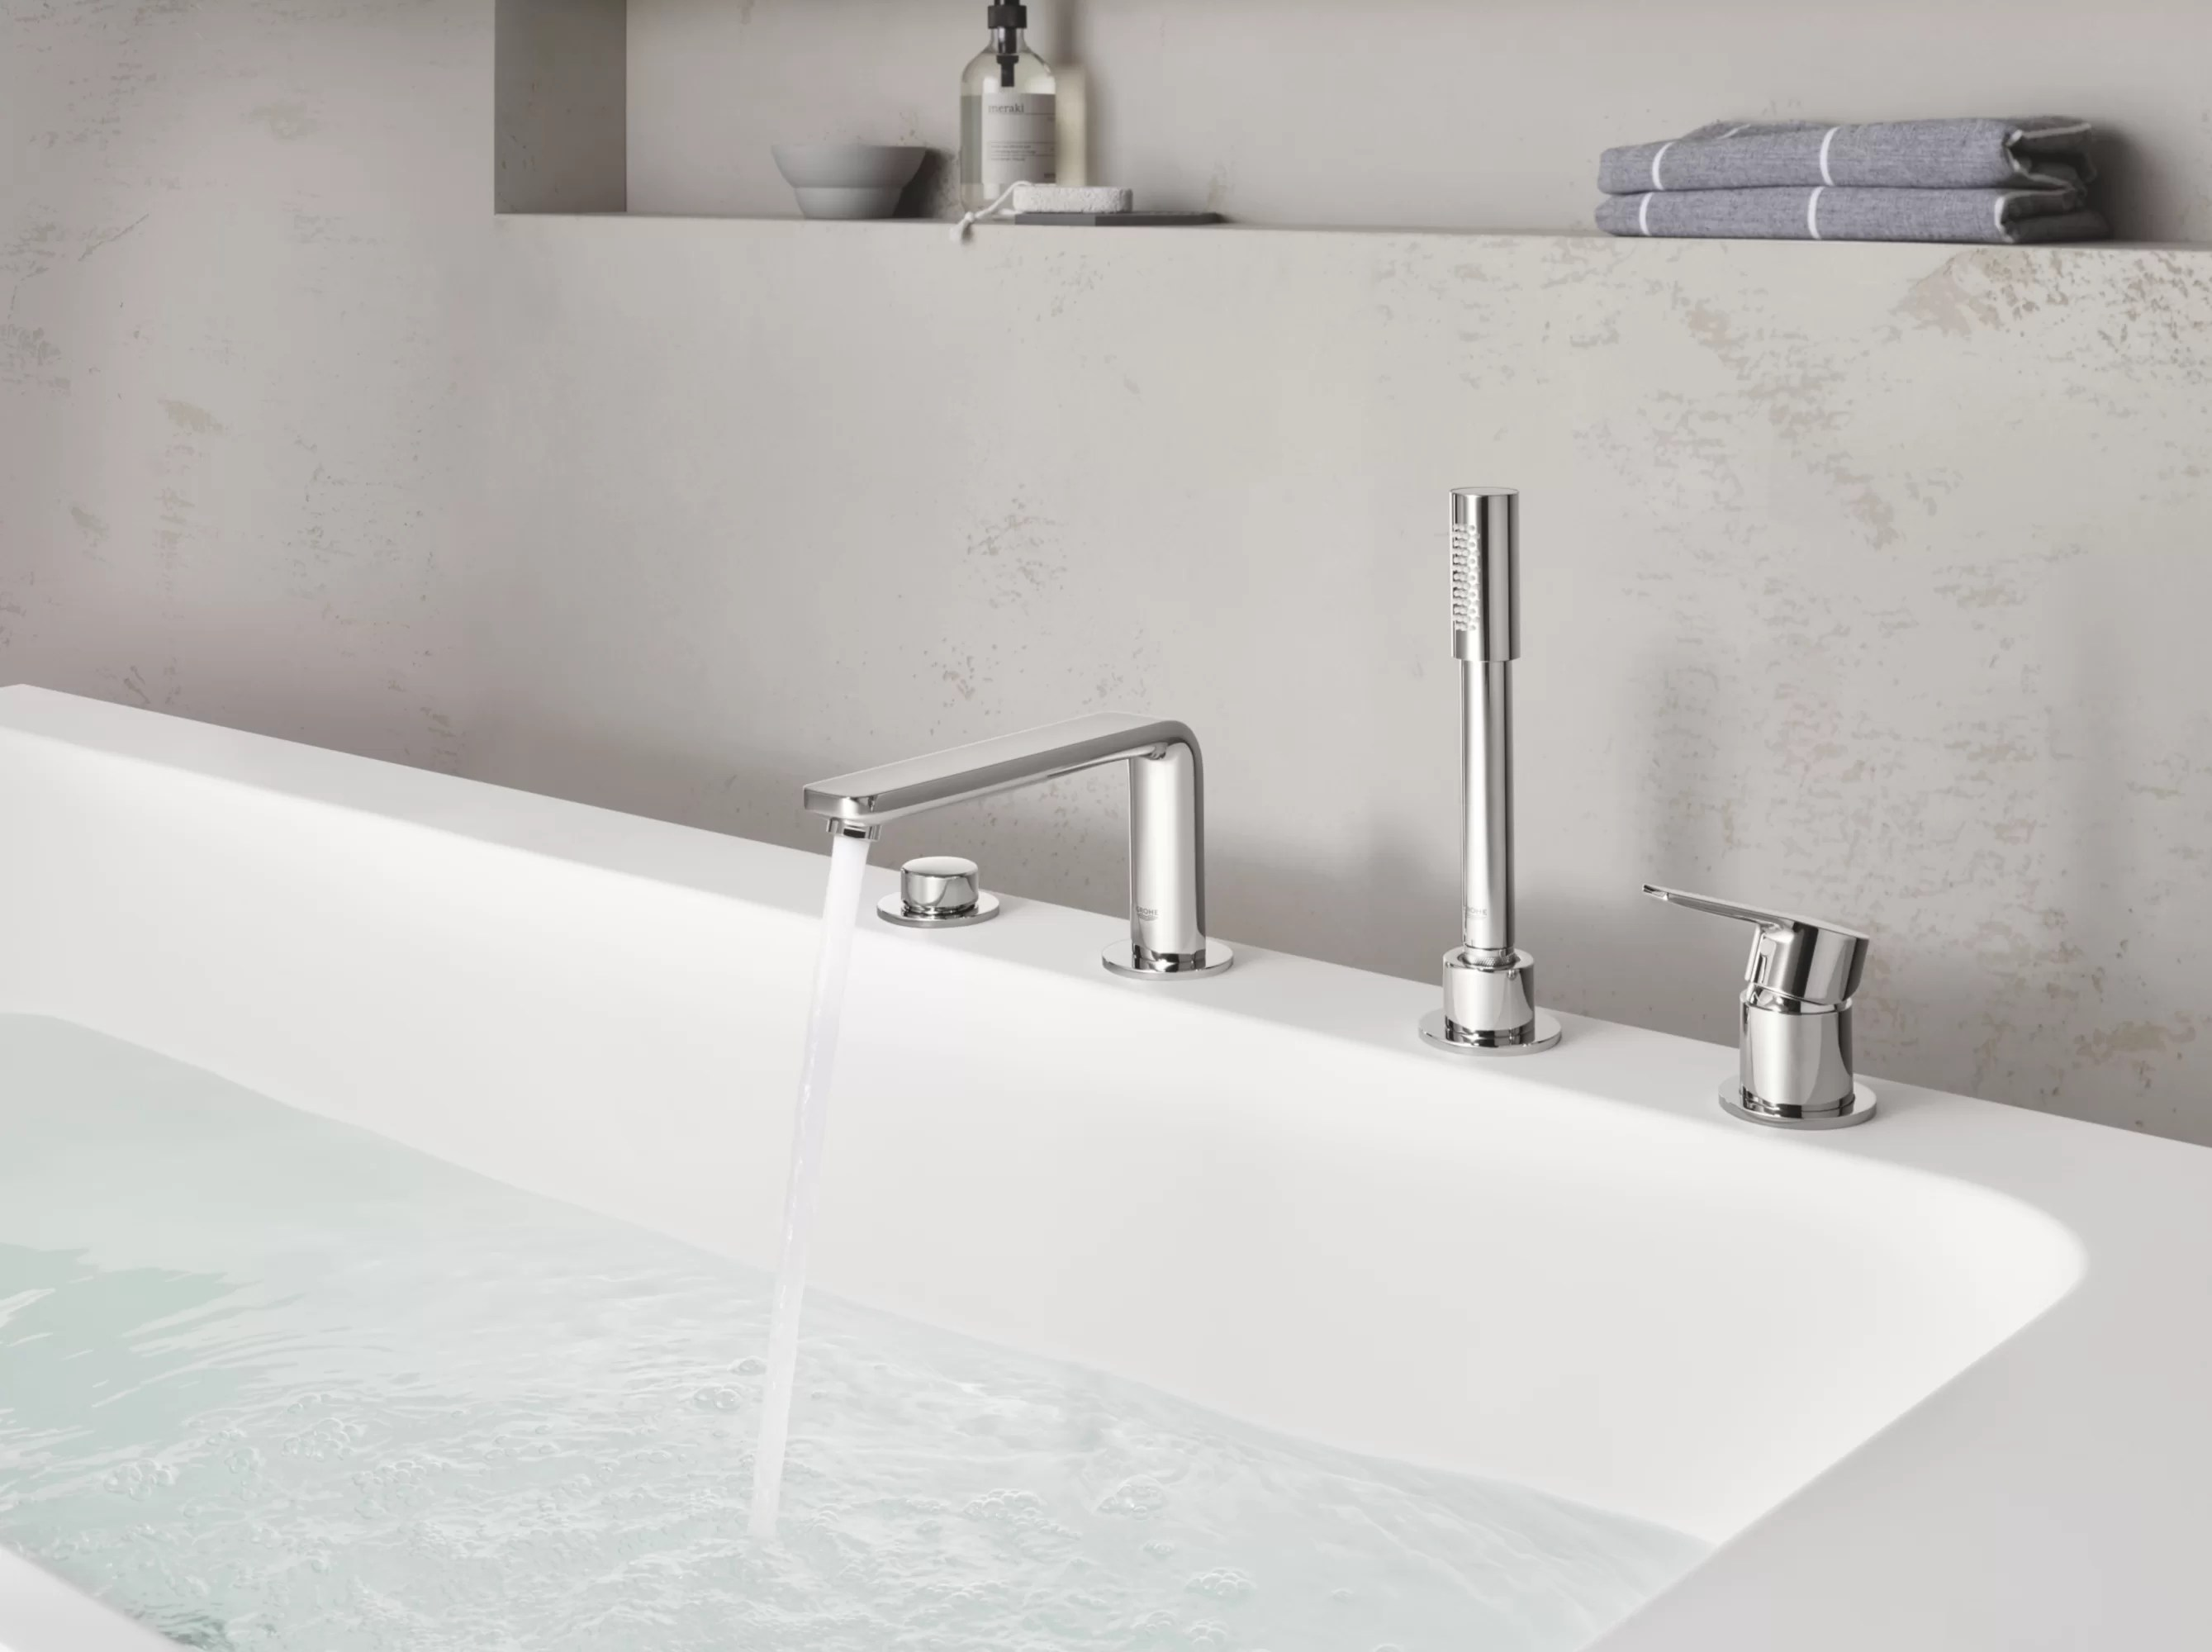 lineare double handle deck mounted roman tub faucet with diverter and handshower